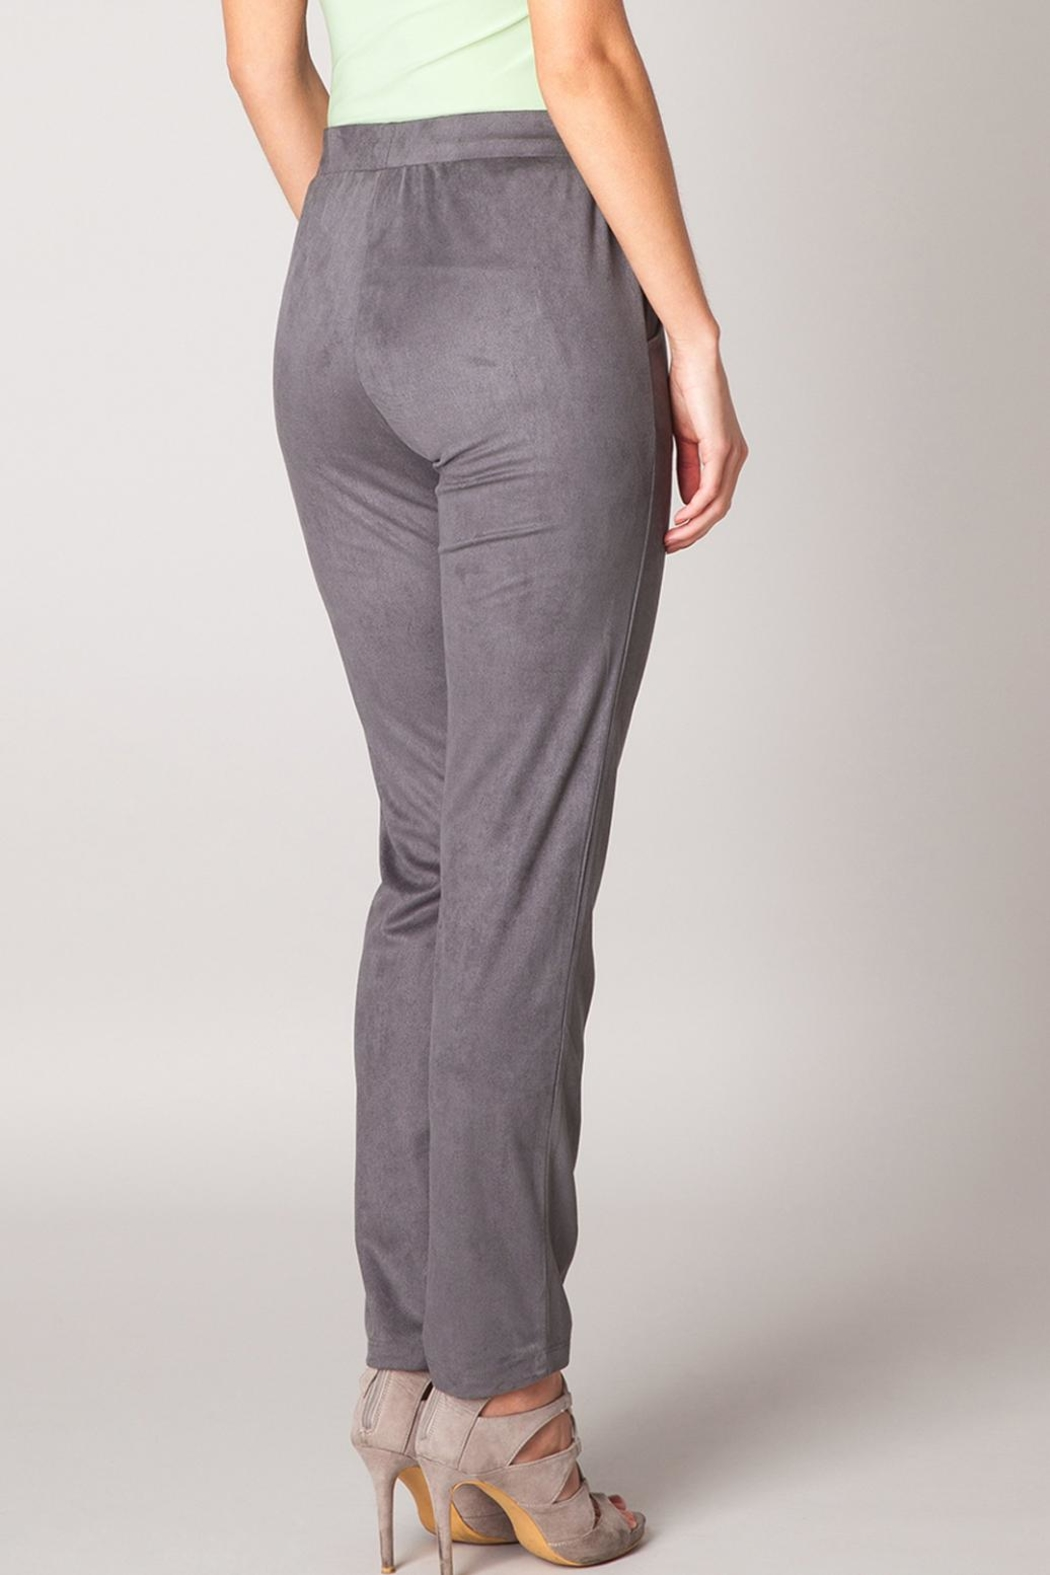 Colleta Grey Suede Pants - Front Full Image